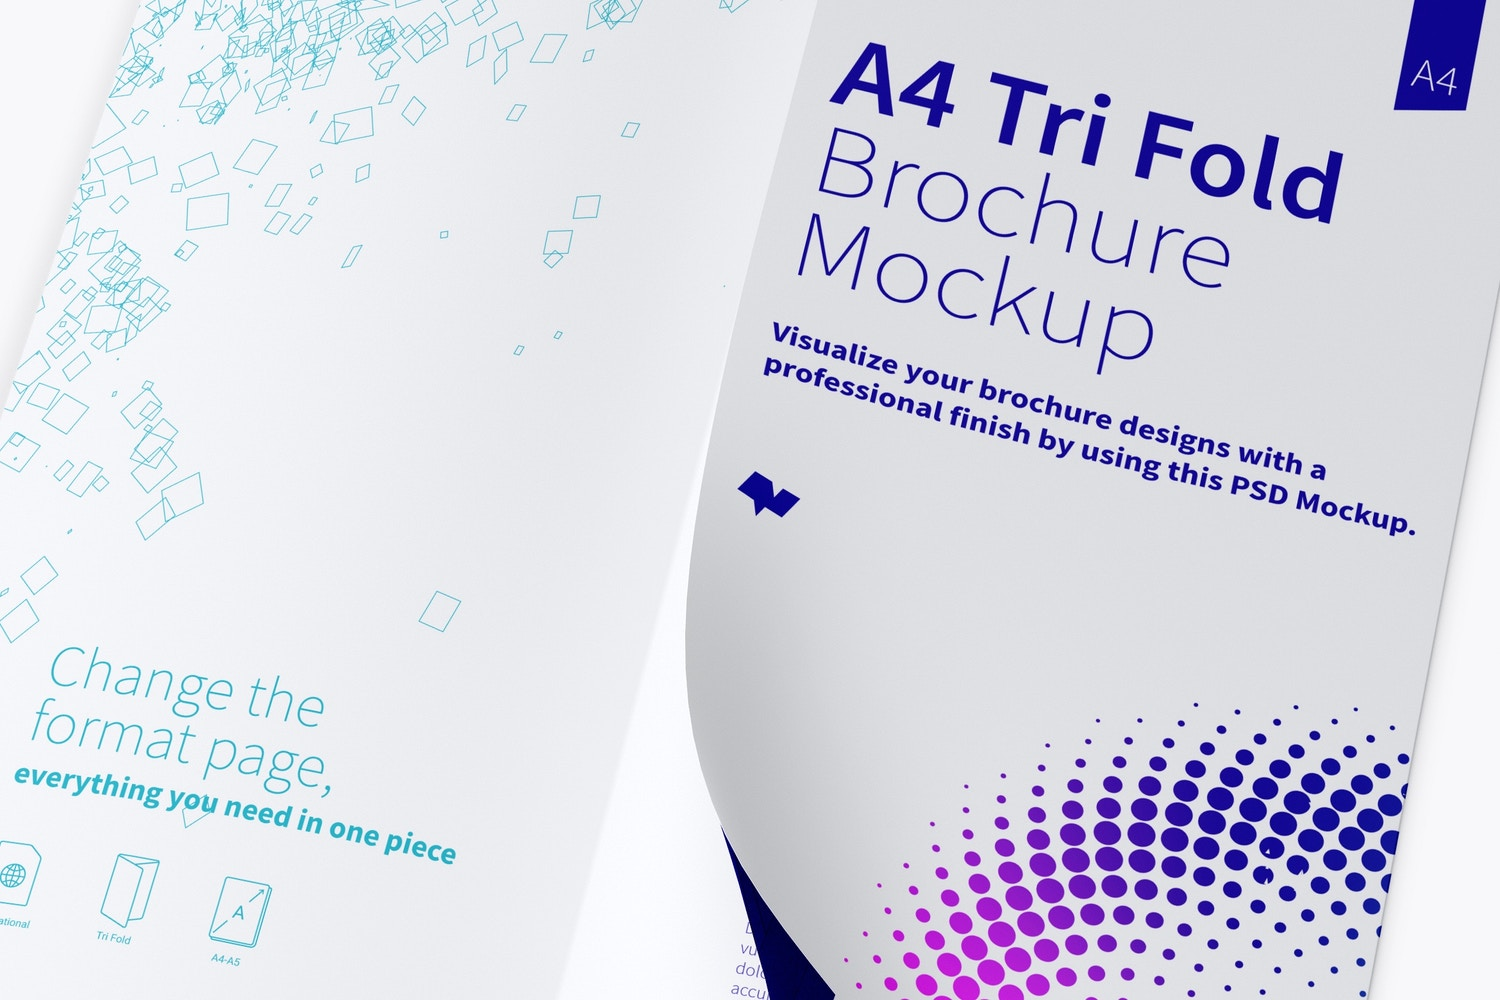 A4 Trifold Brochure Mockup 04 (3) by Original Mockups on Original Mockups